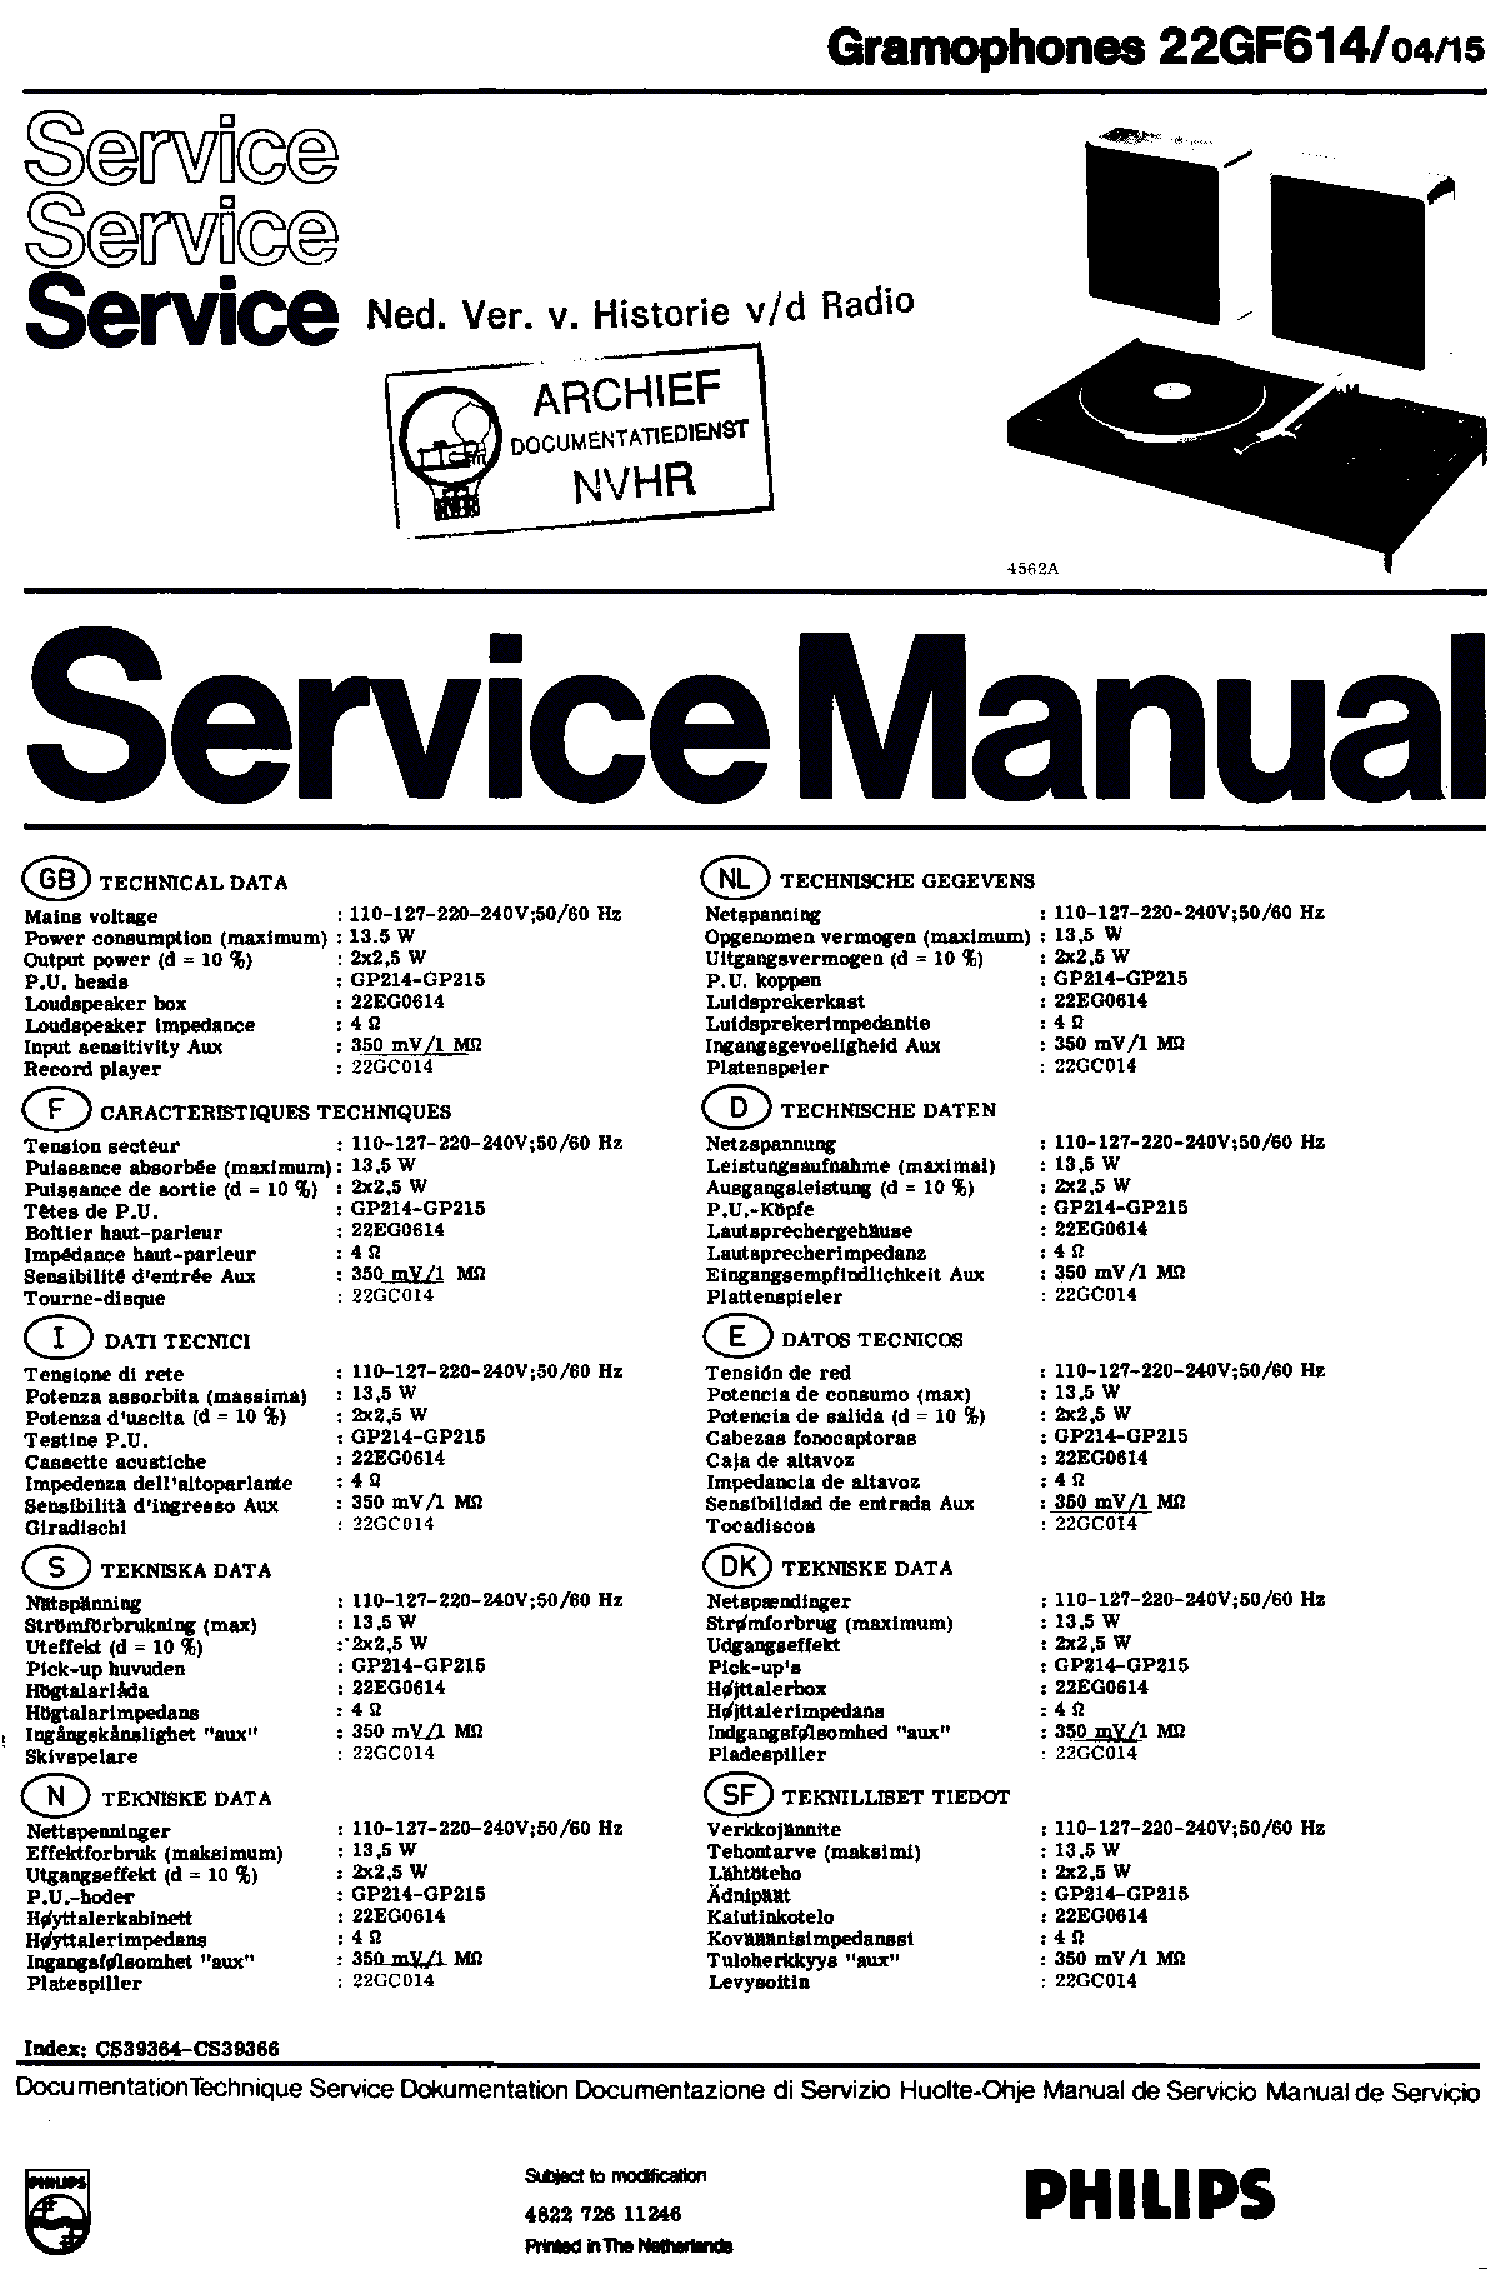 PHILIPS 22GF614-04-15 RECORD PLAYER SM service manual (1st page)